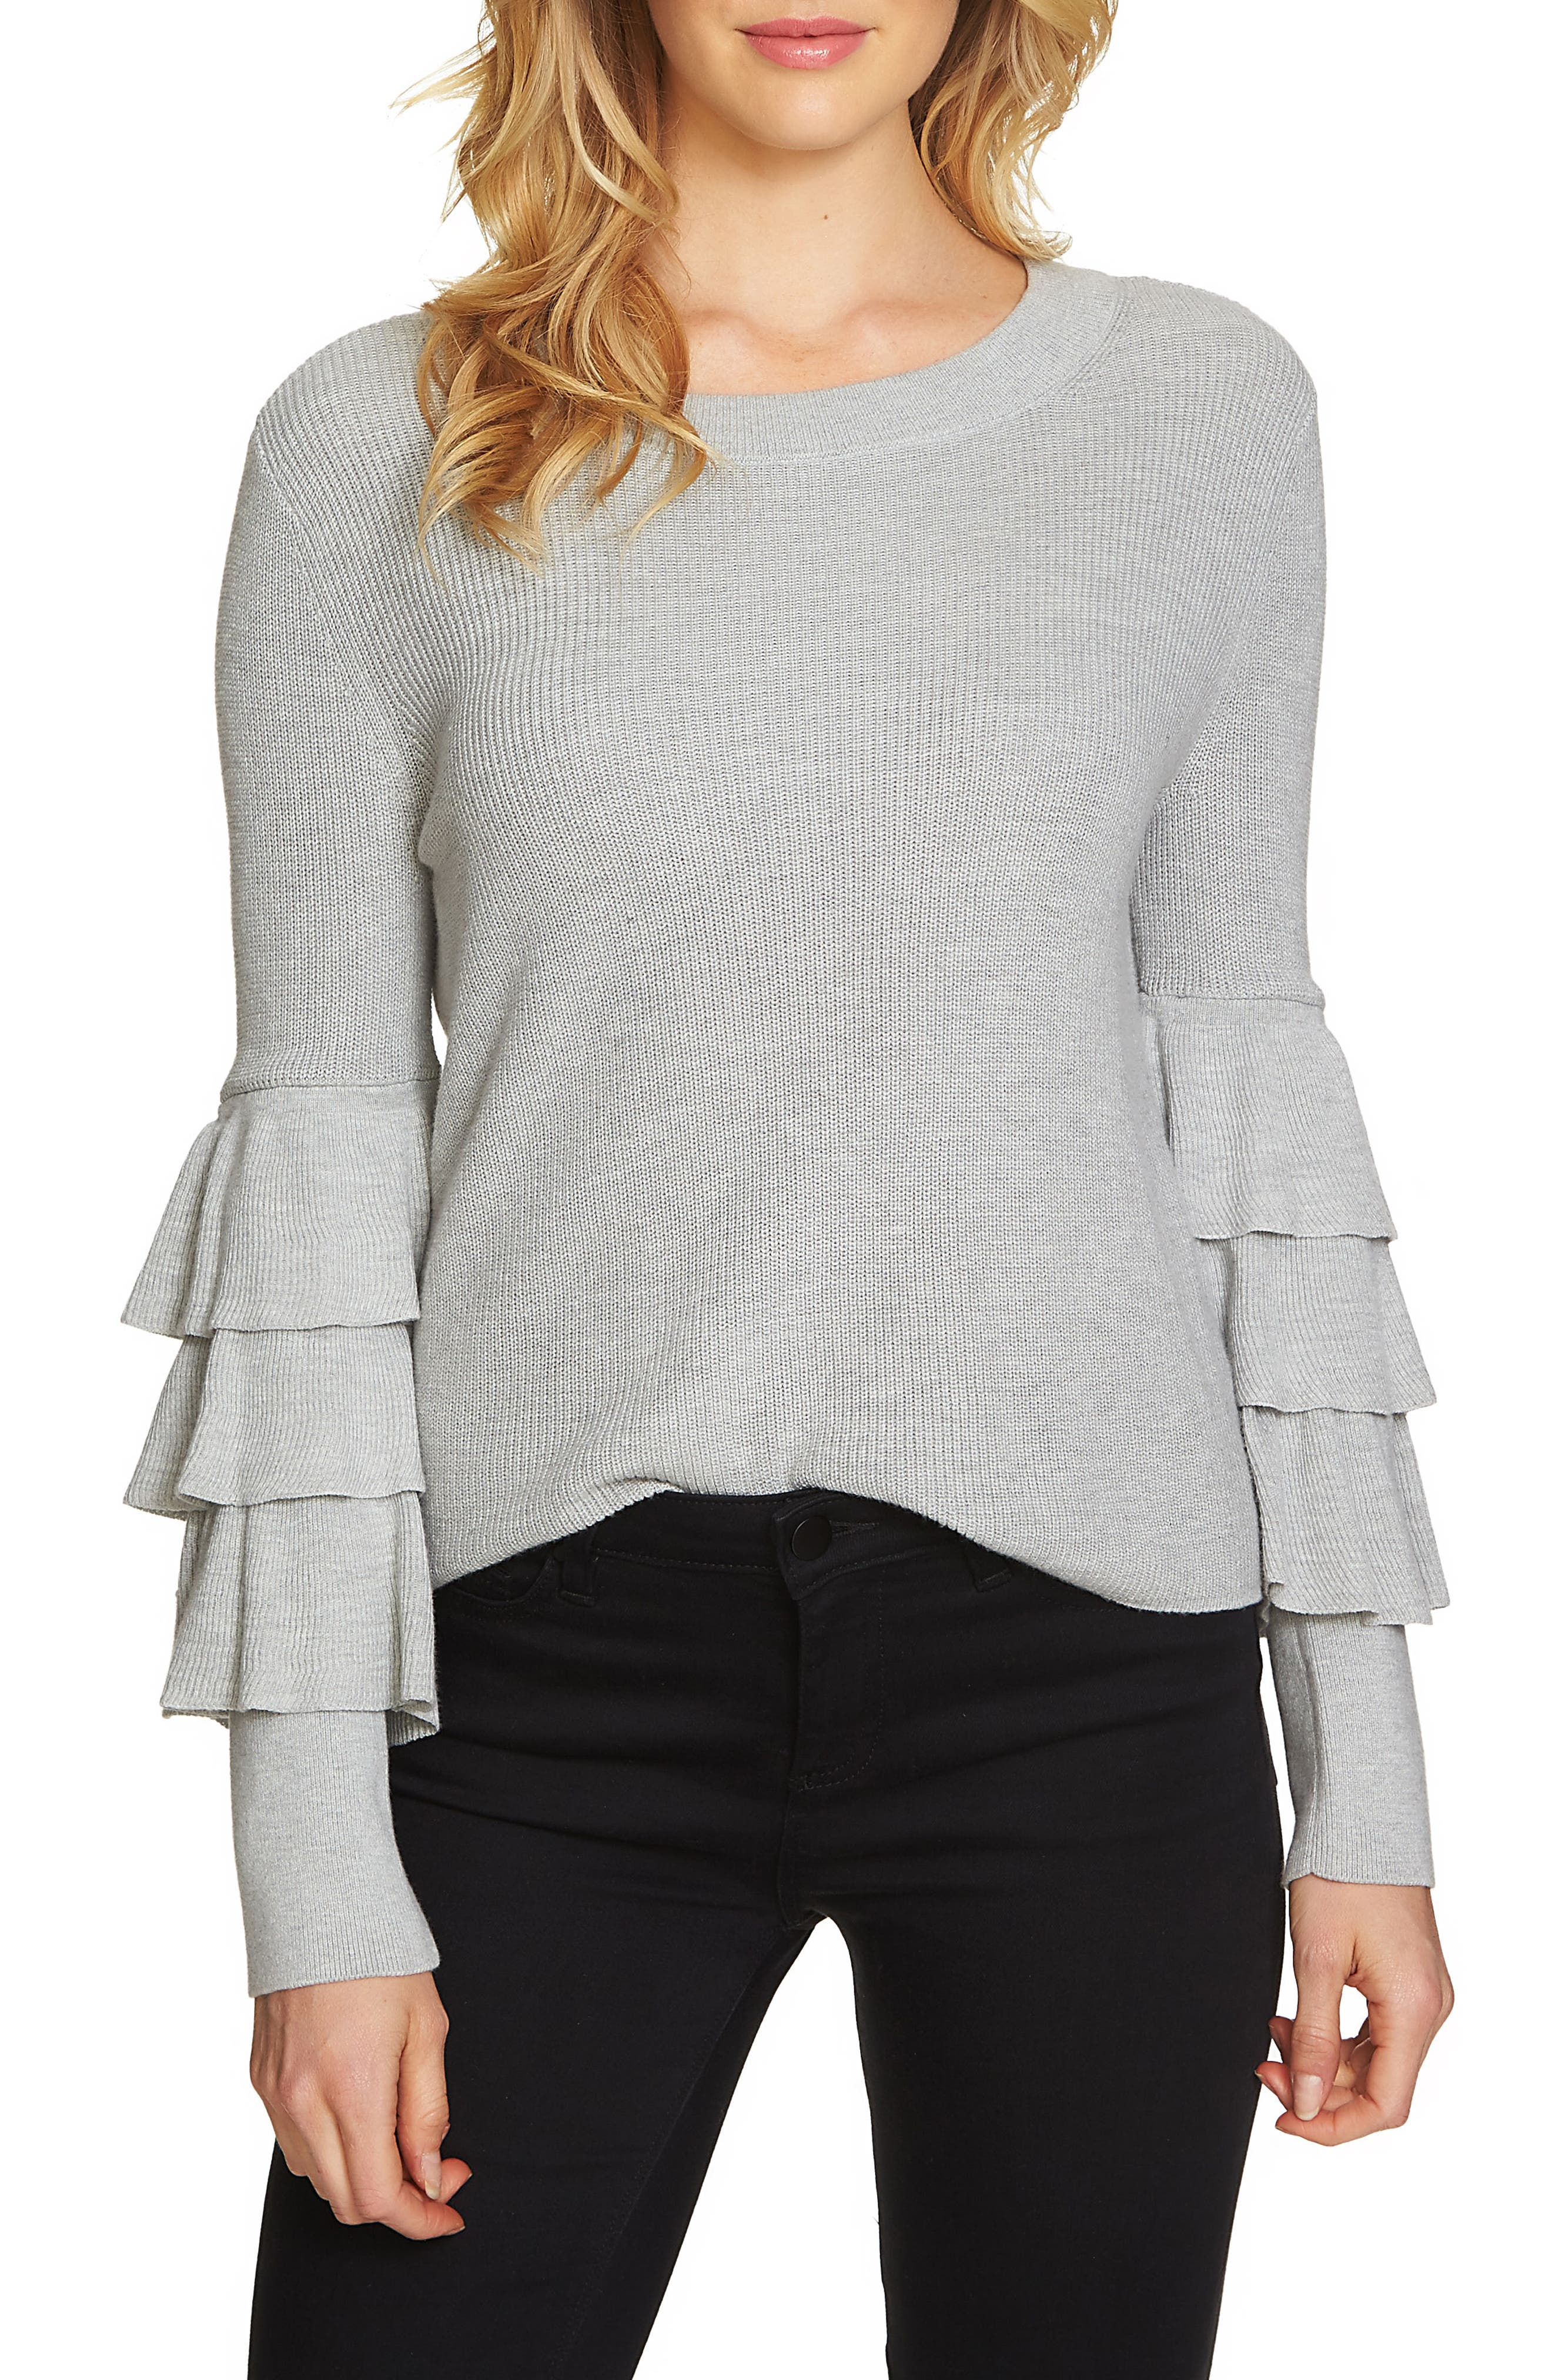 Tiered Ruffle Sleeve Sweater,                             Main thumbnail 1, color,                             Grey Heather